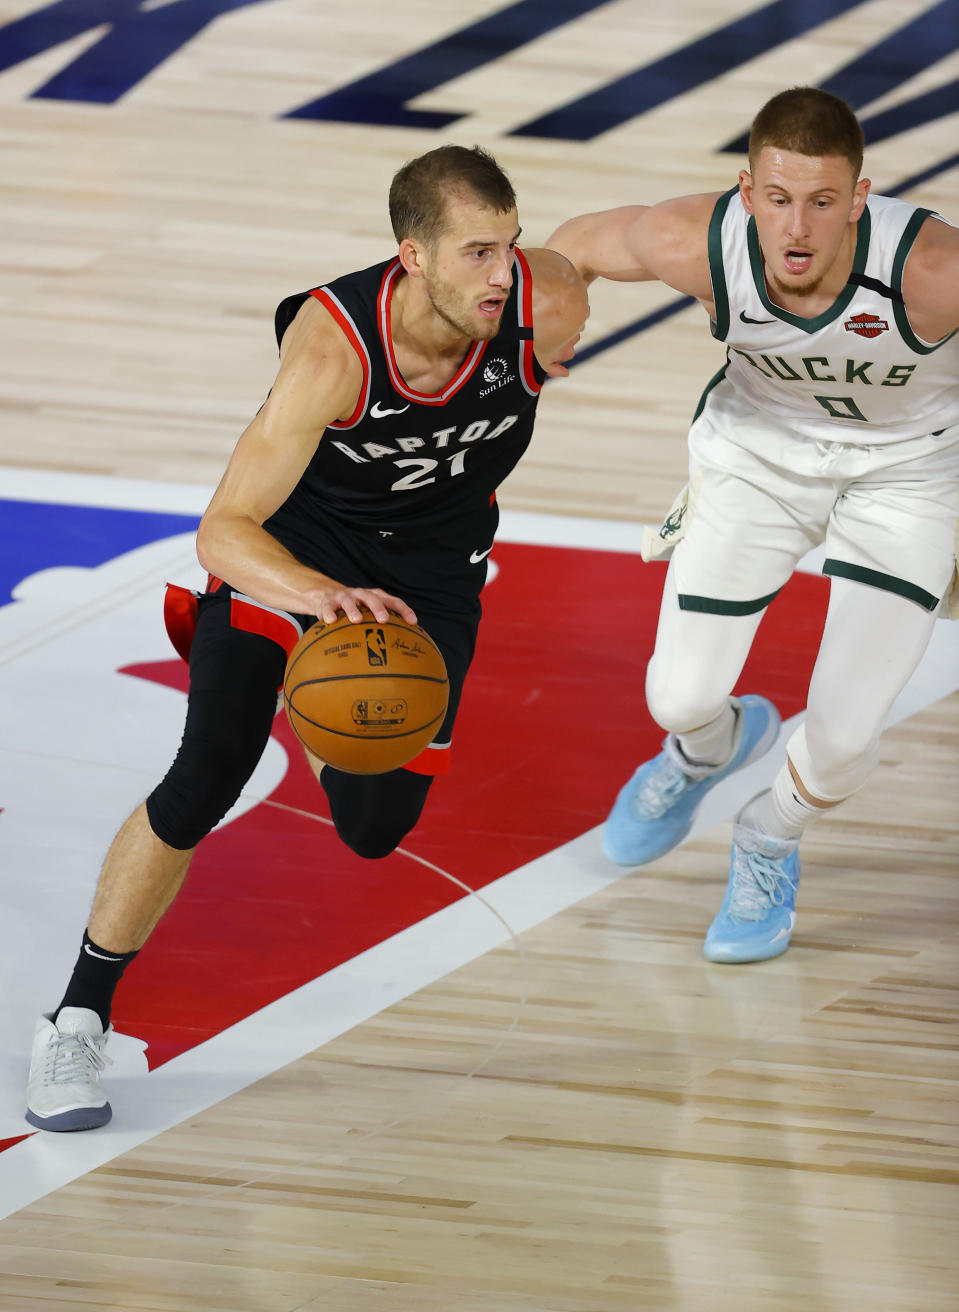 Toronto Raptors' Matt Thomas moves the ball as Milwaukee Bucks' Donte DiVincenzo defends during the fourth quarter of an NBA basketball game Monday, Aug. 10, 2020, in Lake Buena Vista, Fla. (Mike Ehrmann/Pool Photo via AP)